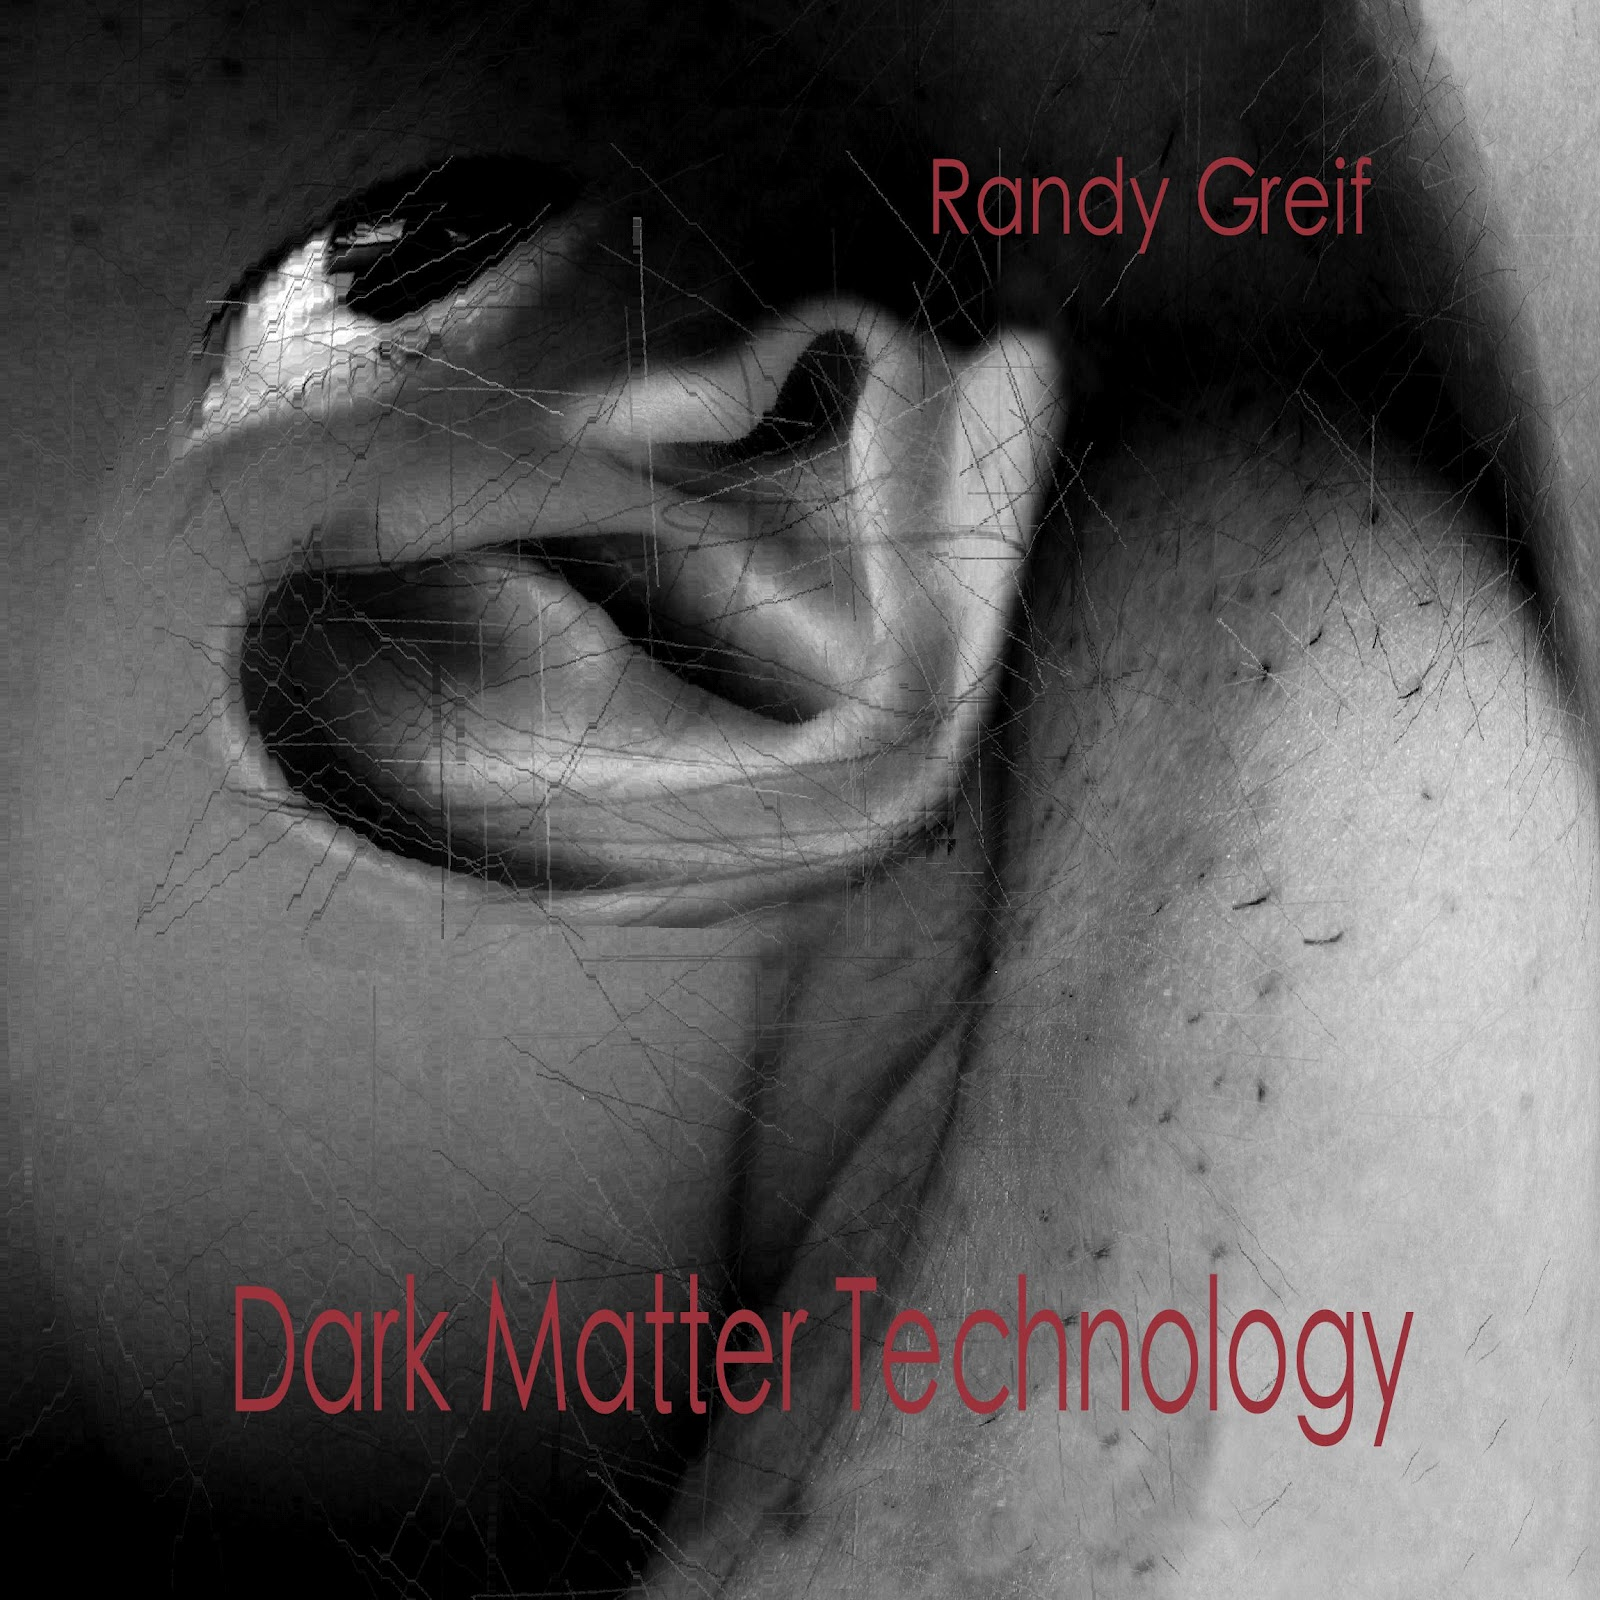 Randy Greif - The Magnetic Spine Review - The Wireless Spine Review